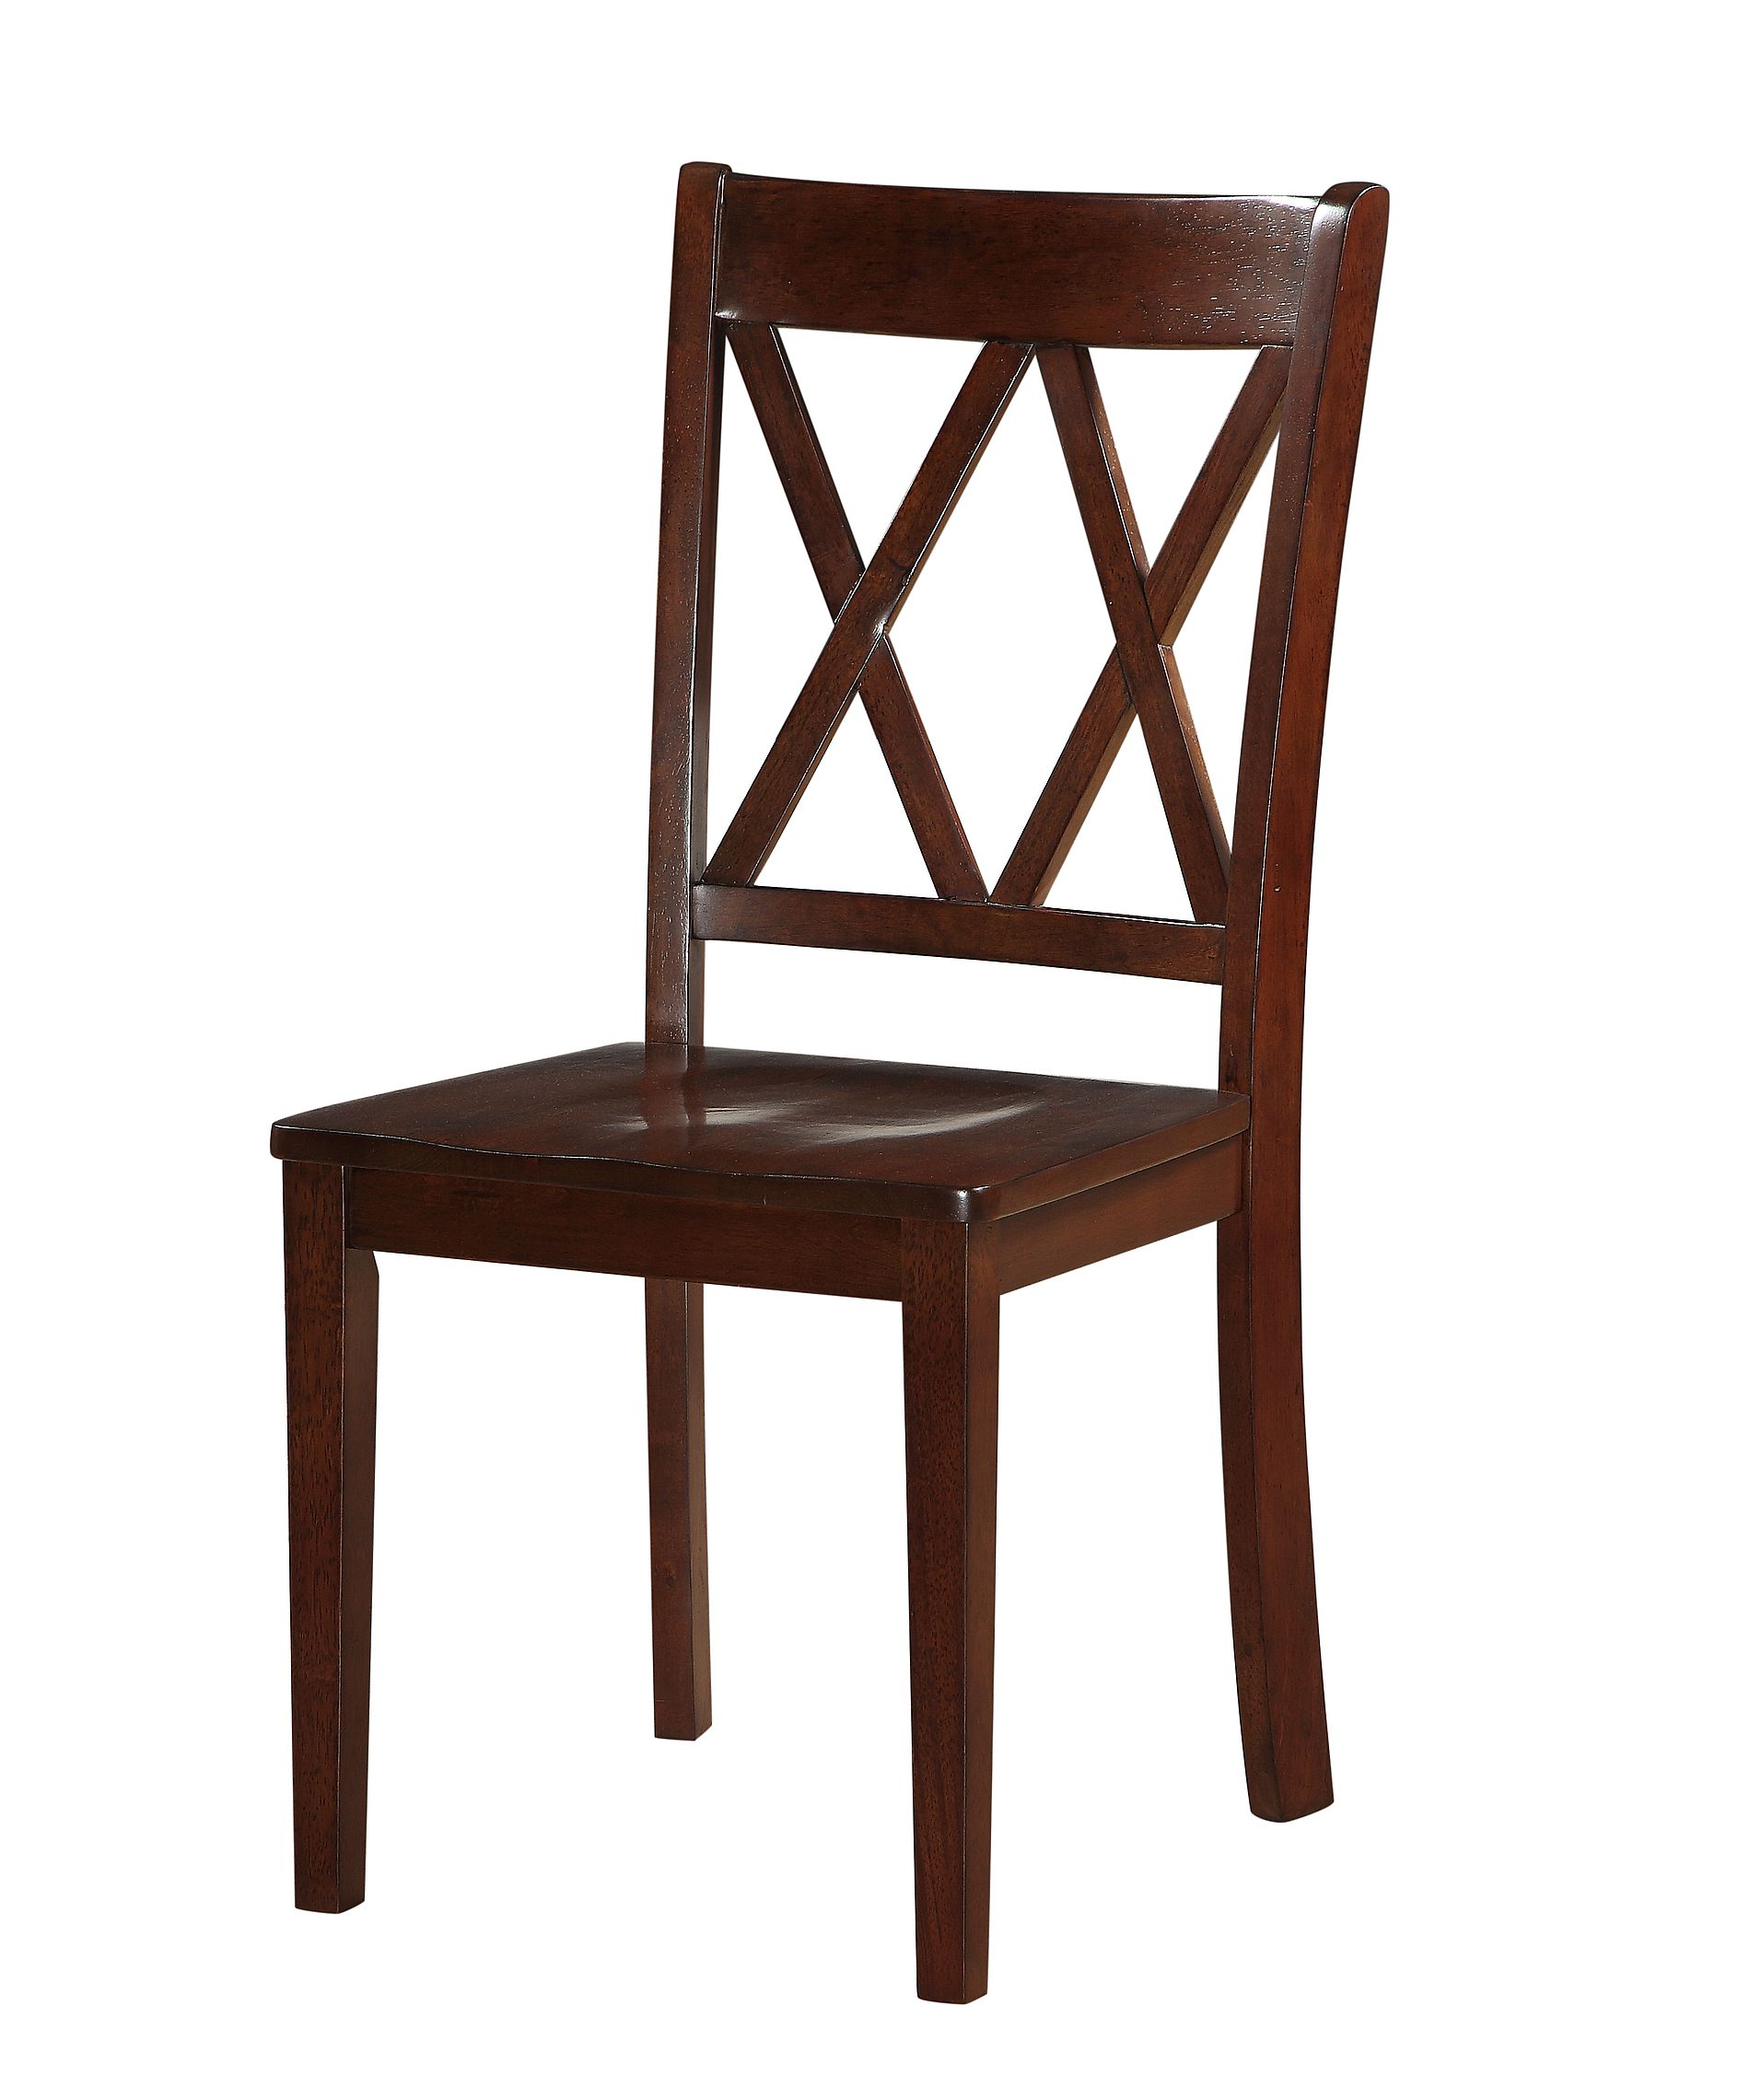 Kmart Dining Chairs Dining Table Wood Chair Kmart